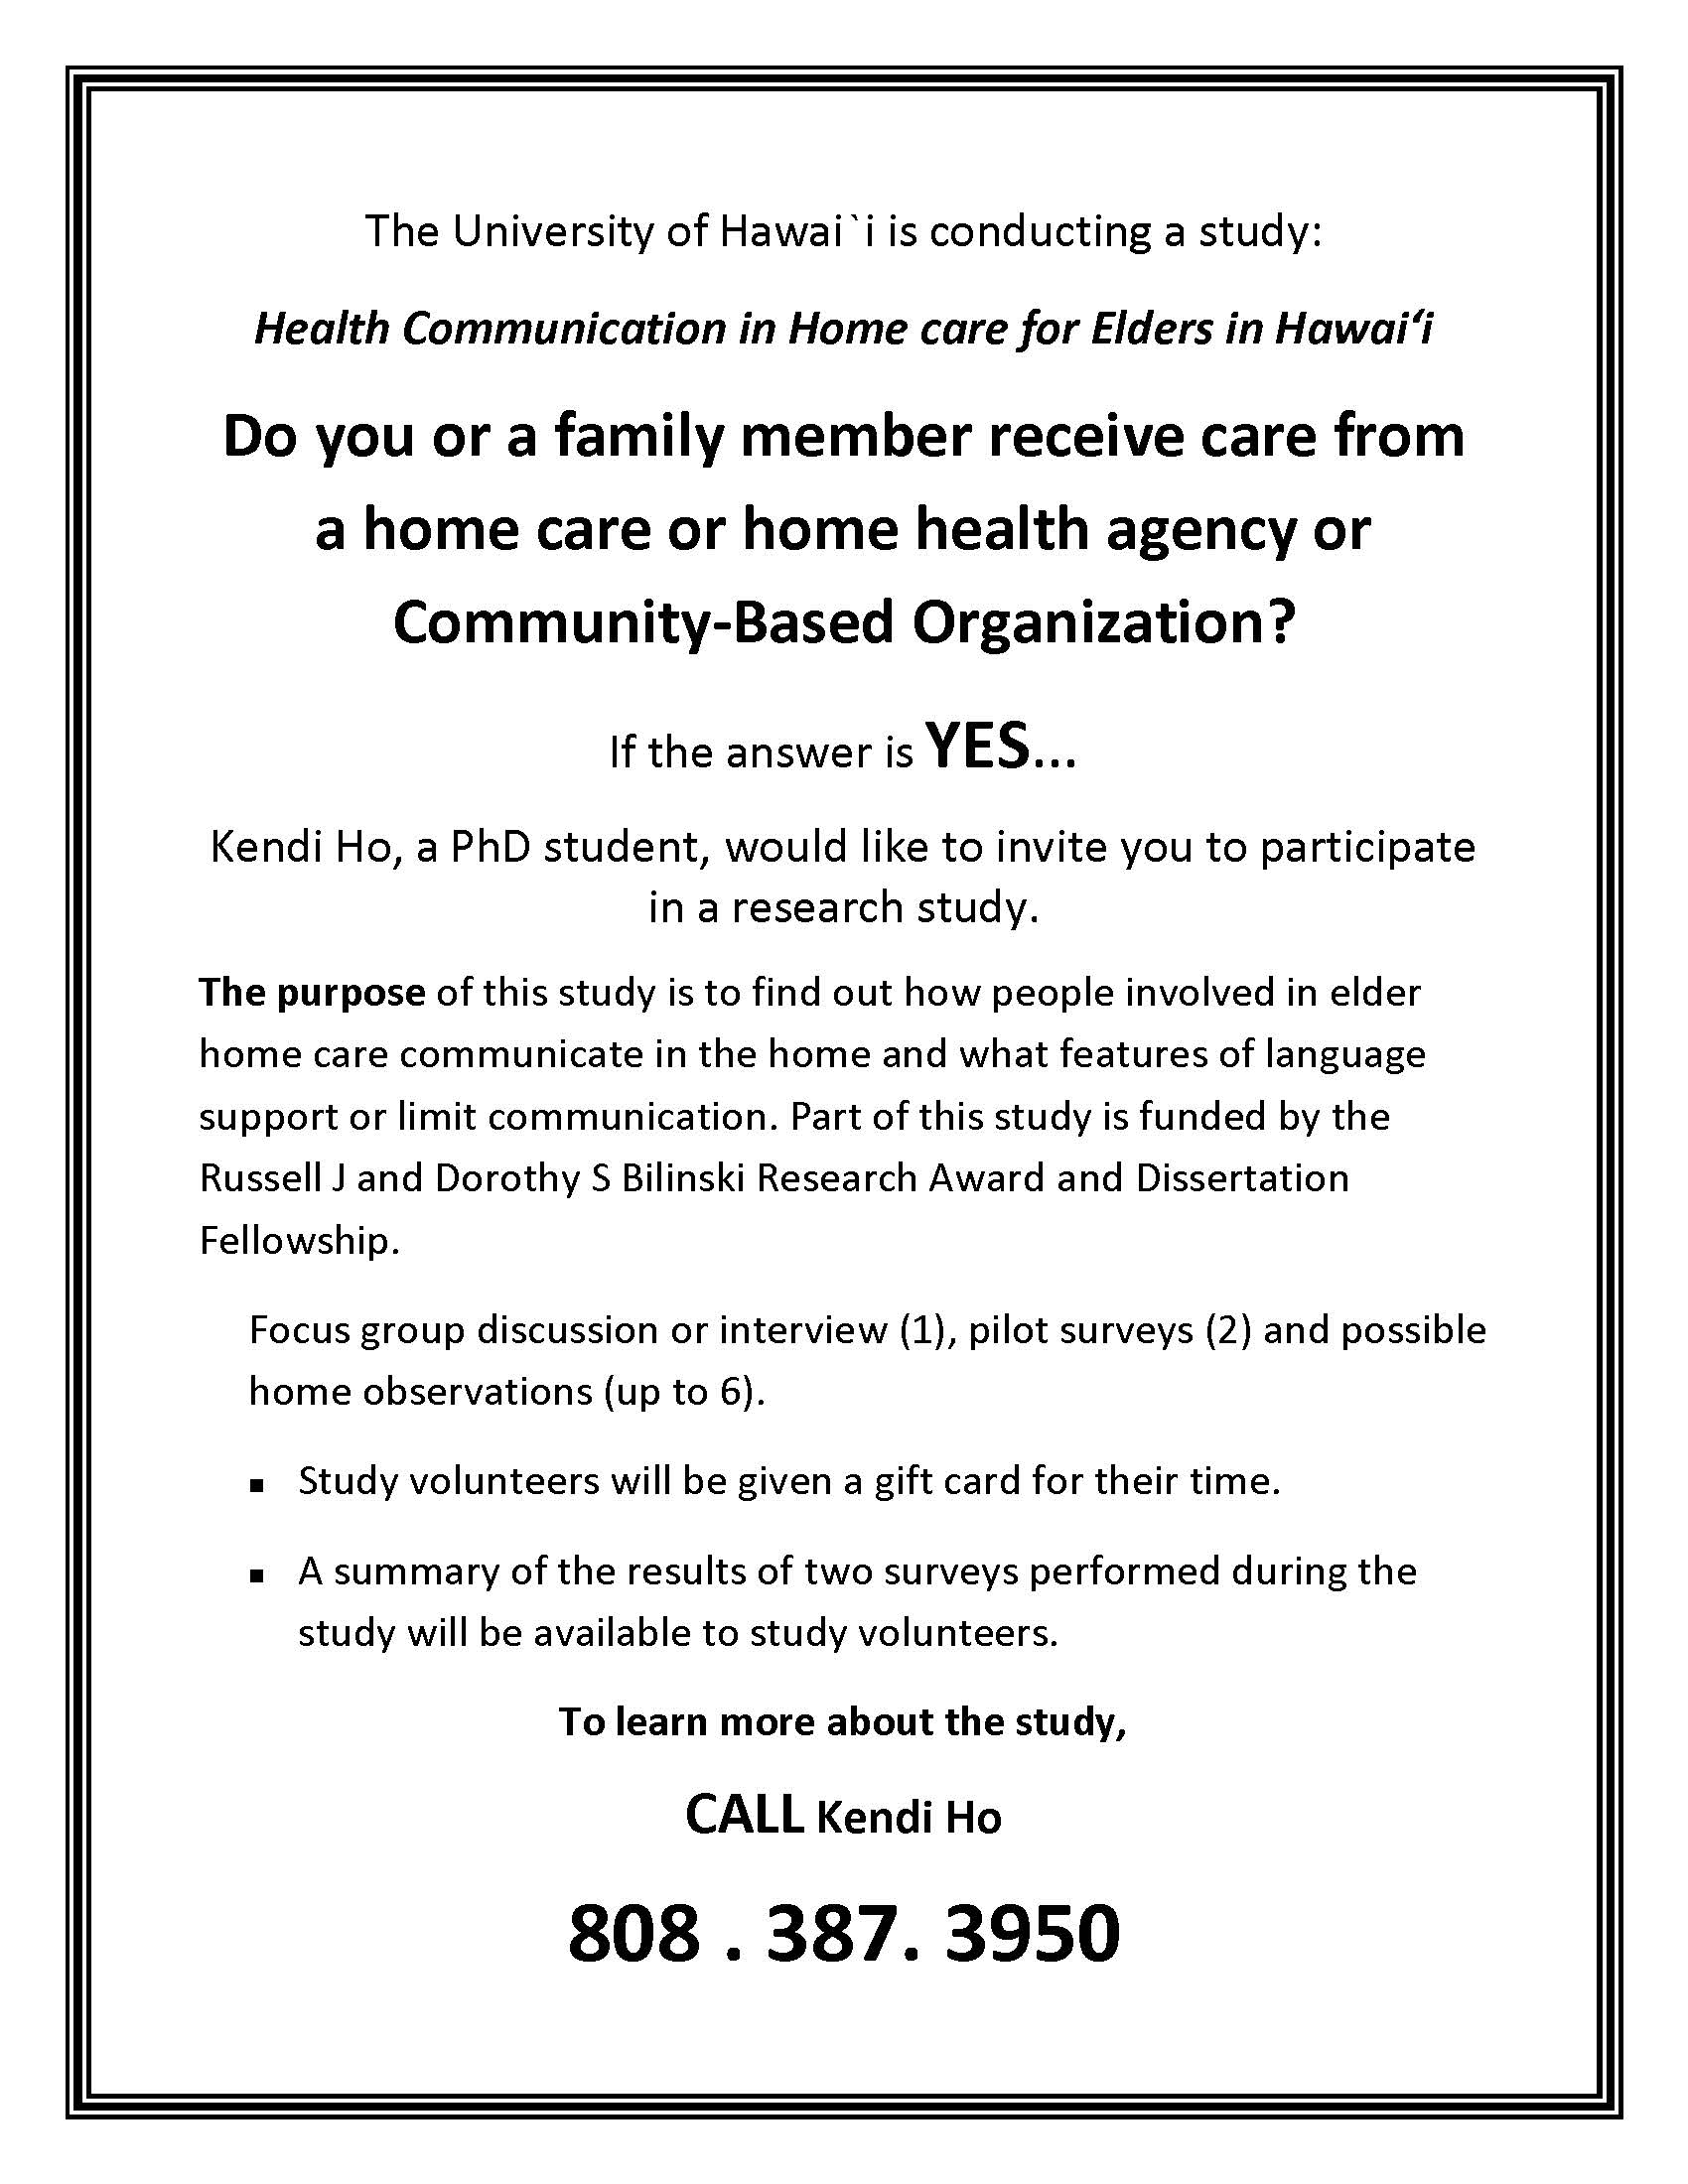 Health Communication in Home care for Elders in Hawaii with Kendi Ho